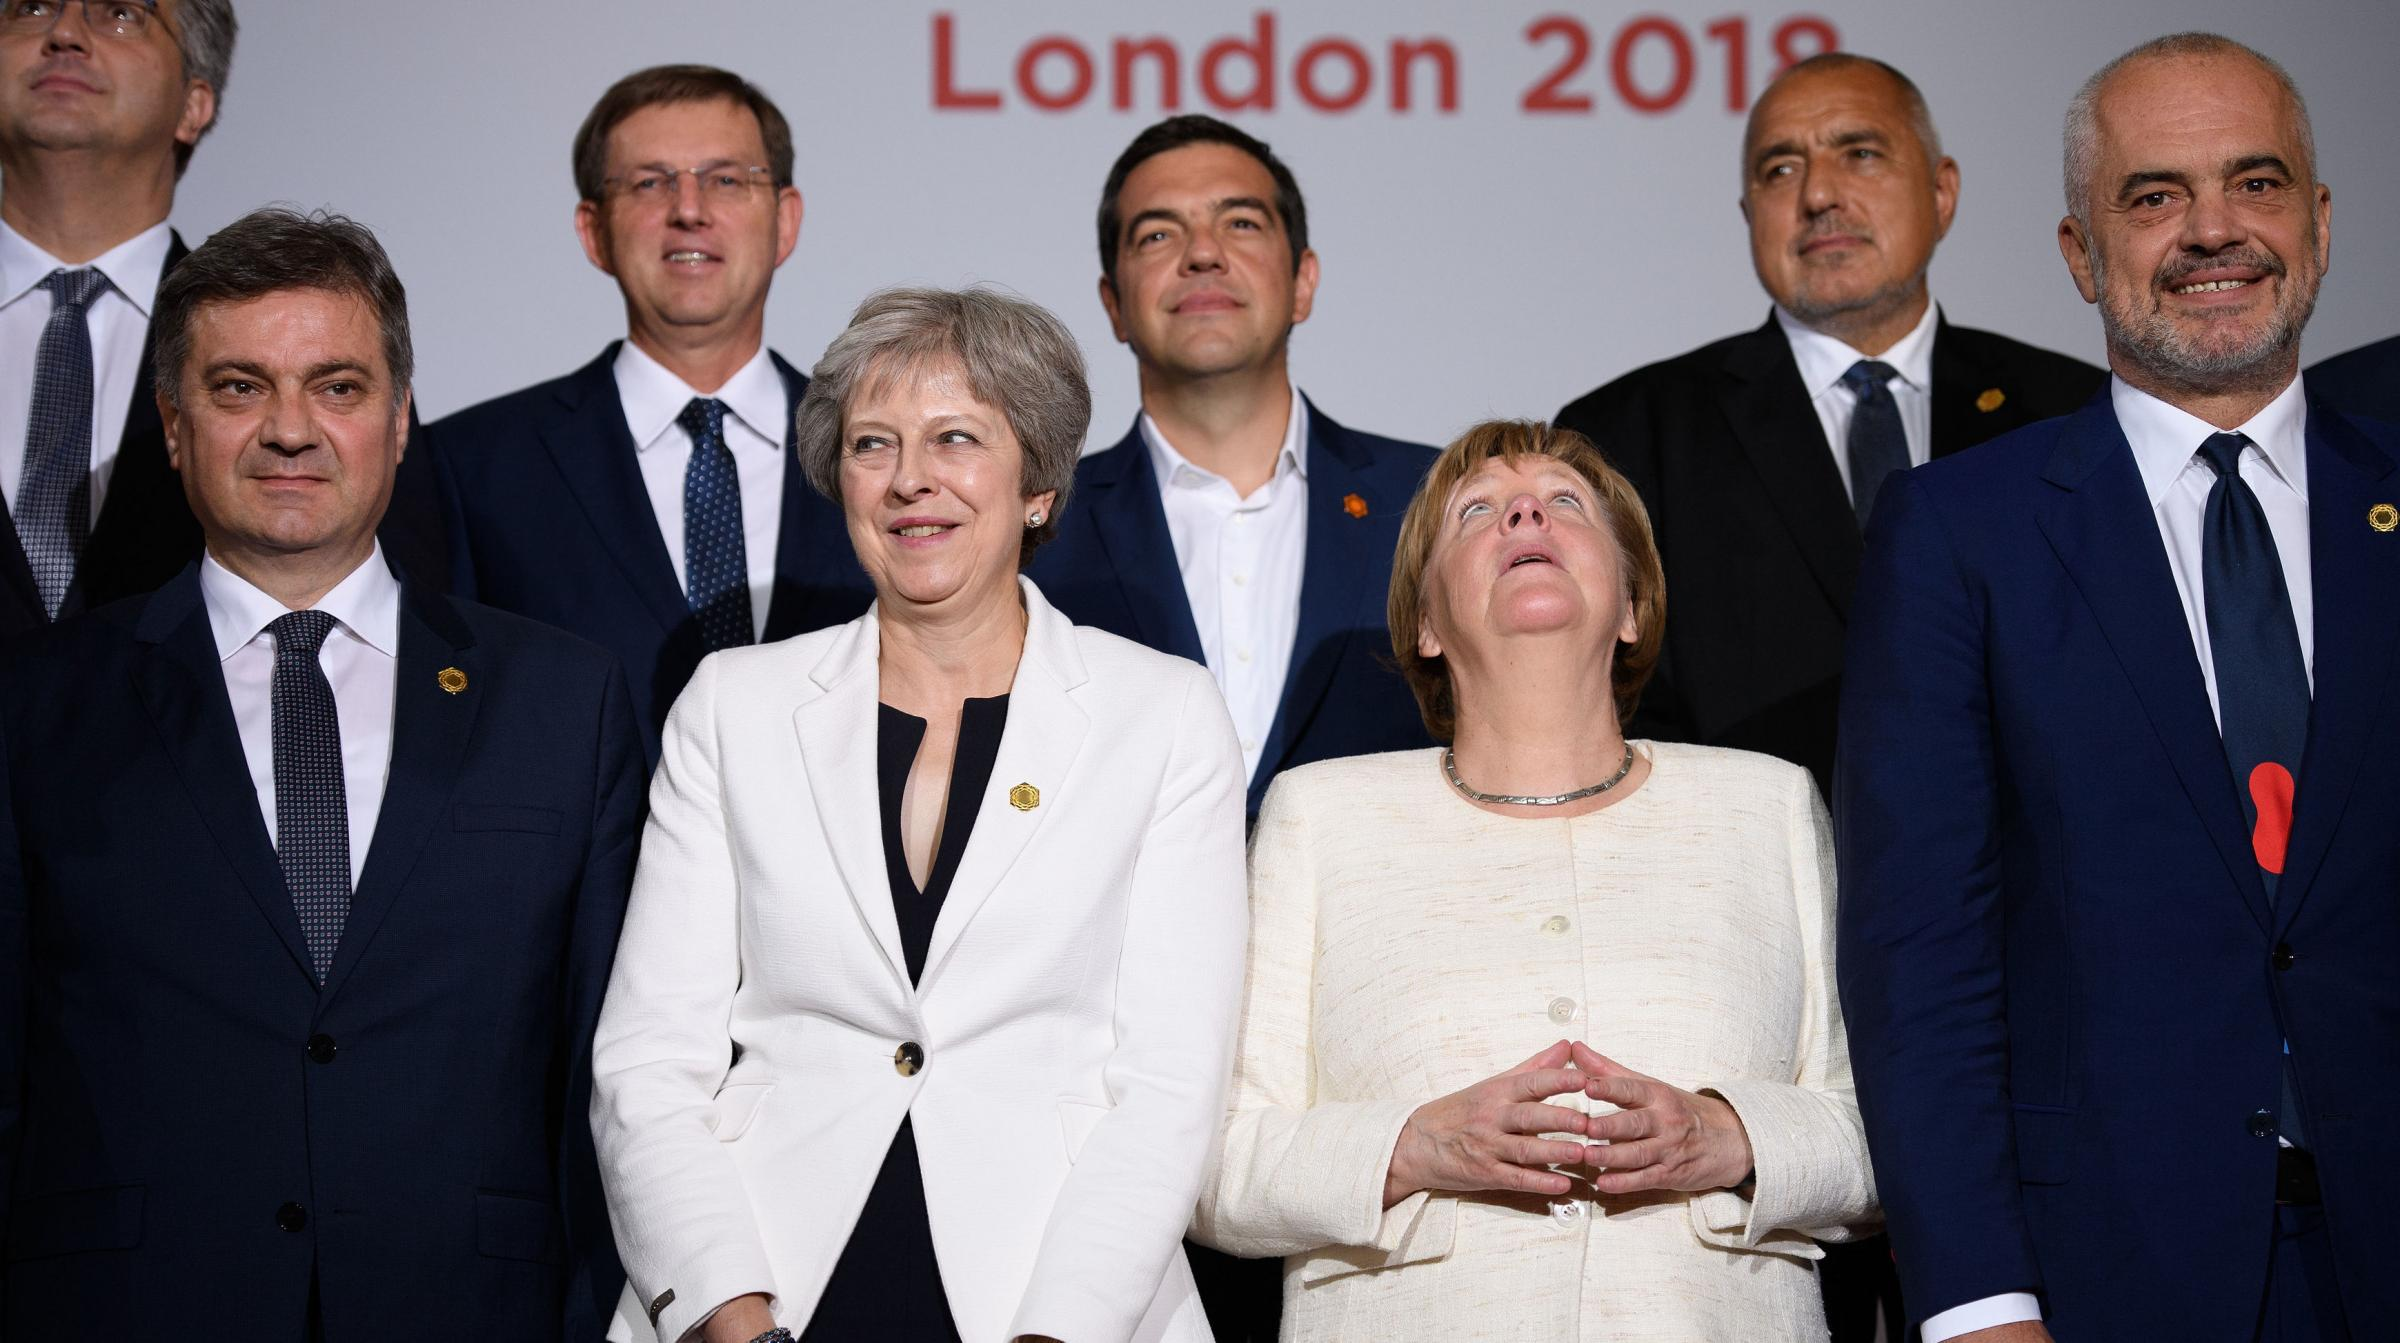 Theresa May looks uncomfortable as she lines up with Angela Merkel and other leaders during the second day of the Western Balkans summit in London